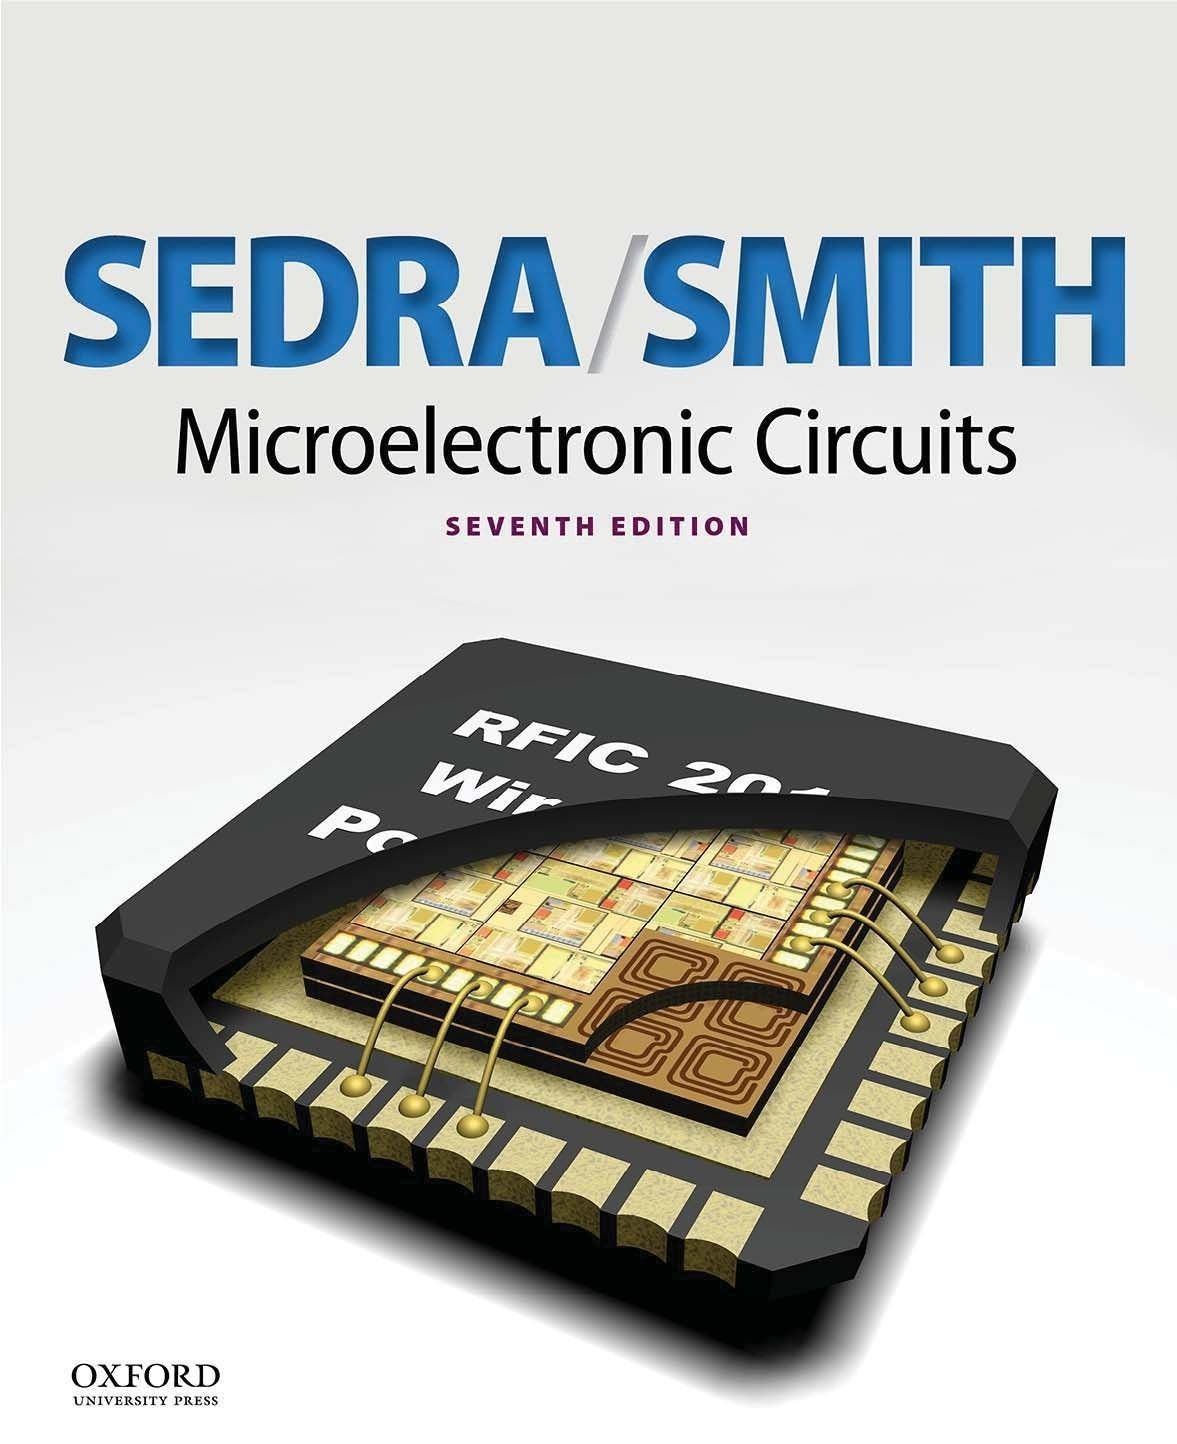 Sedra smith microelectronic circuits 6th | conlaocard | Pinterest ...